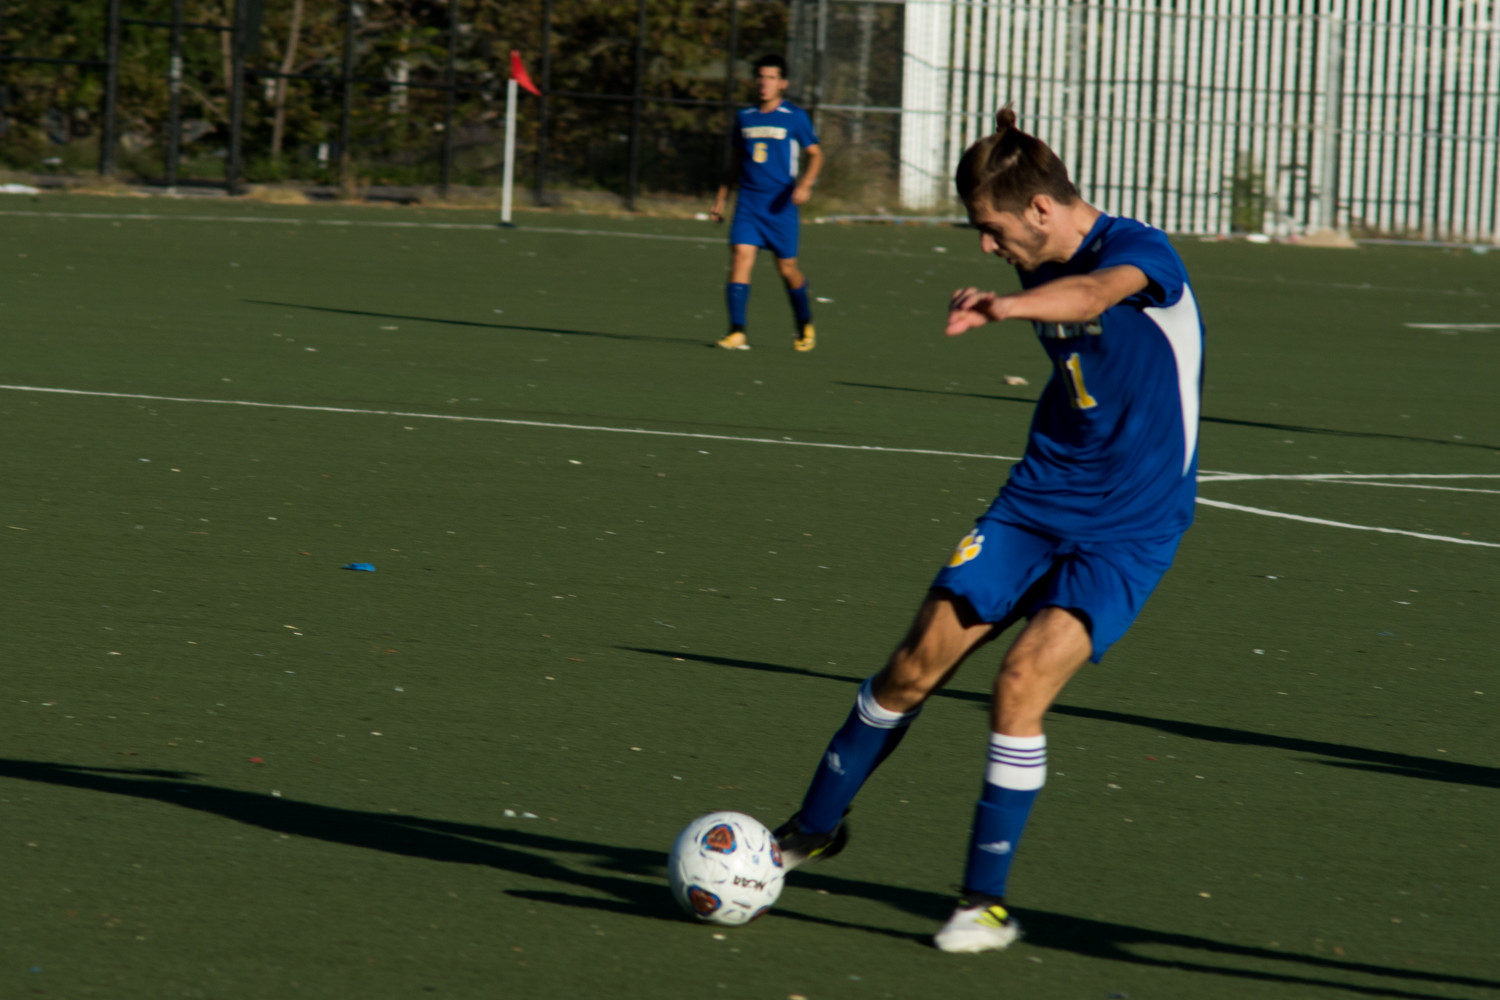 Rronaldo Kocaj, scored both goals in RKA's 2-0 victory over IN-Tech.